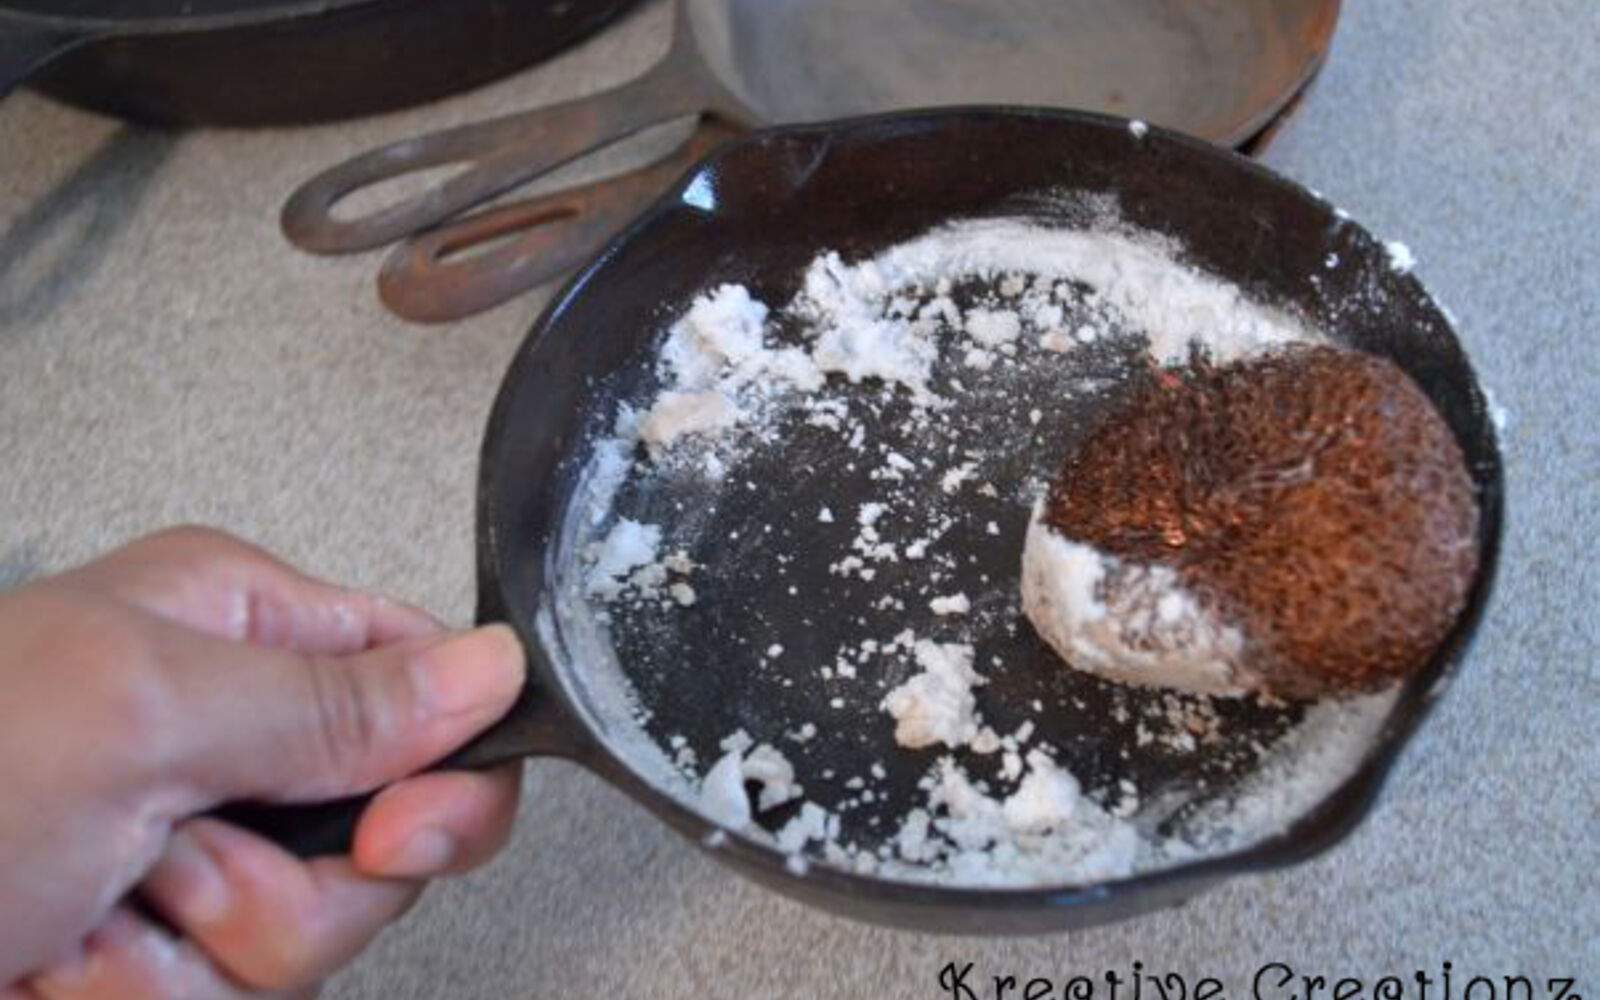 s 30 essential hacks for cleaning around your home, Clean Your Cast Iron With Copper